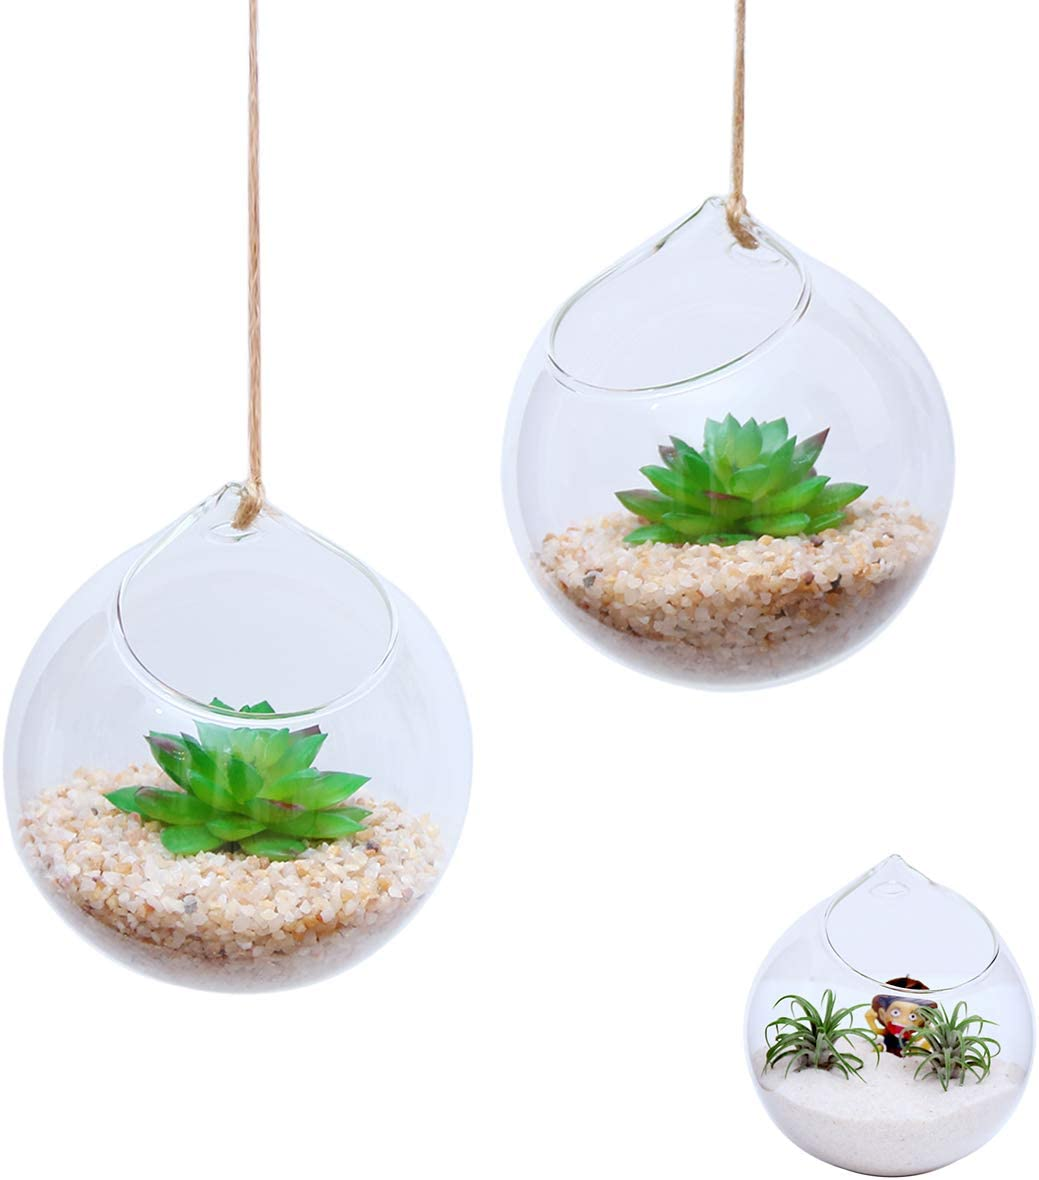 Ivolador Set of 2PCS 4.7 Inches Hanging Planter Glass Terrarium Container Air Plant Holder Succulents Globe Shape Home Garden Decor